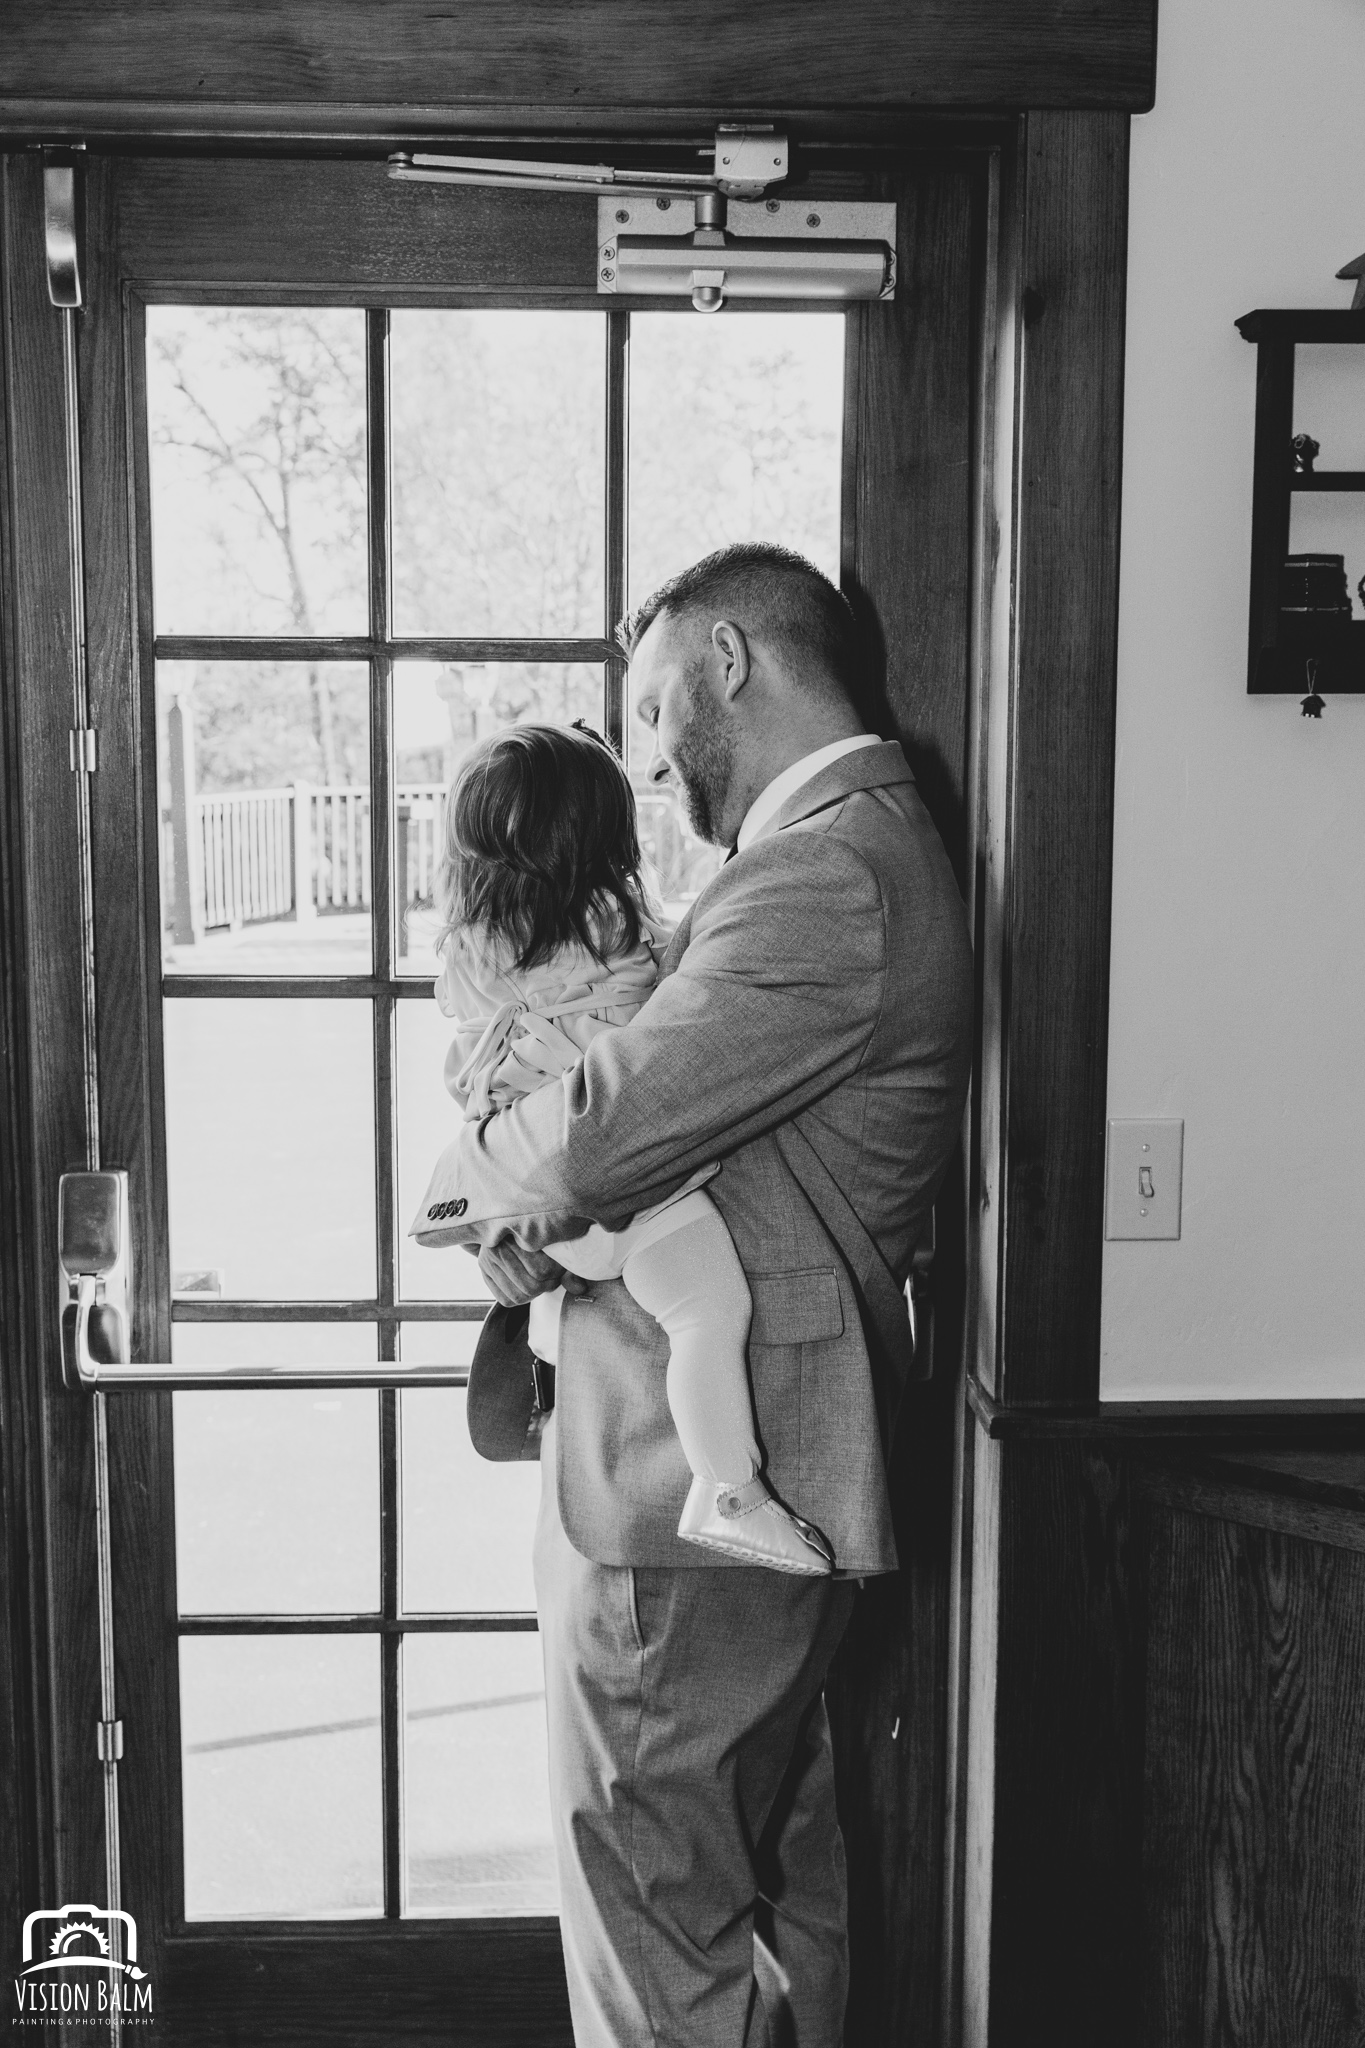 Lifestyle wedding photo of groom and his baby daughter in Zuka's Hilltop Barn by Vision Balm in Charleston, SC.